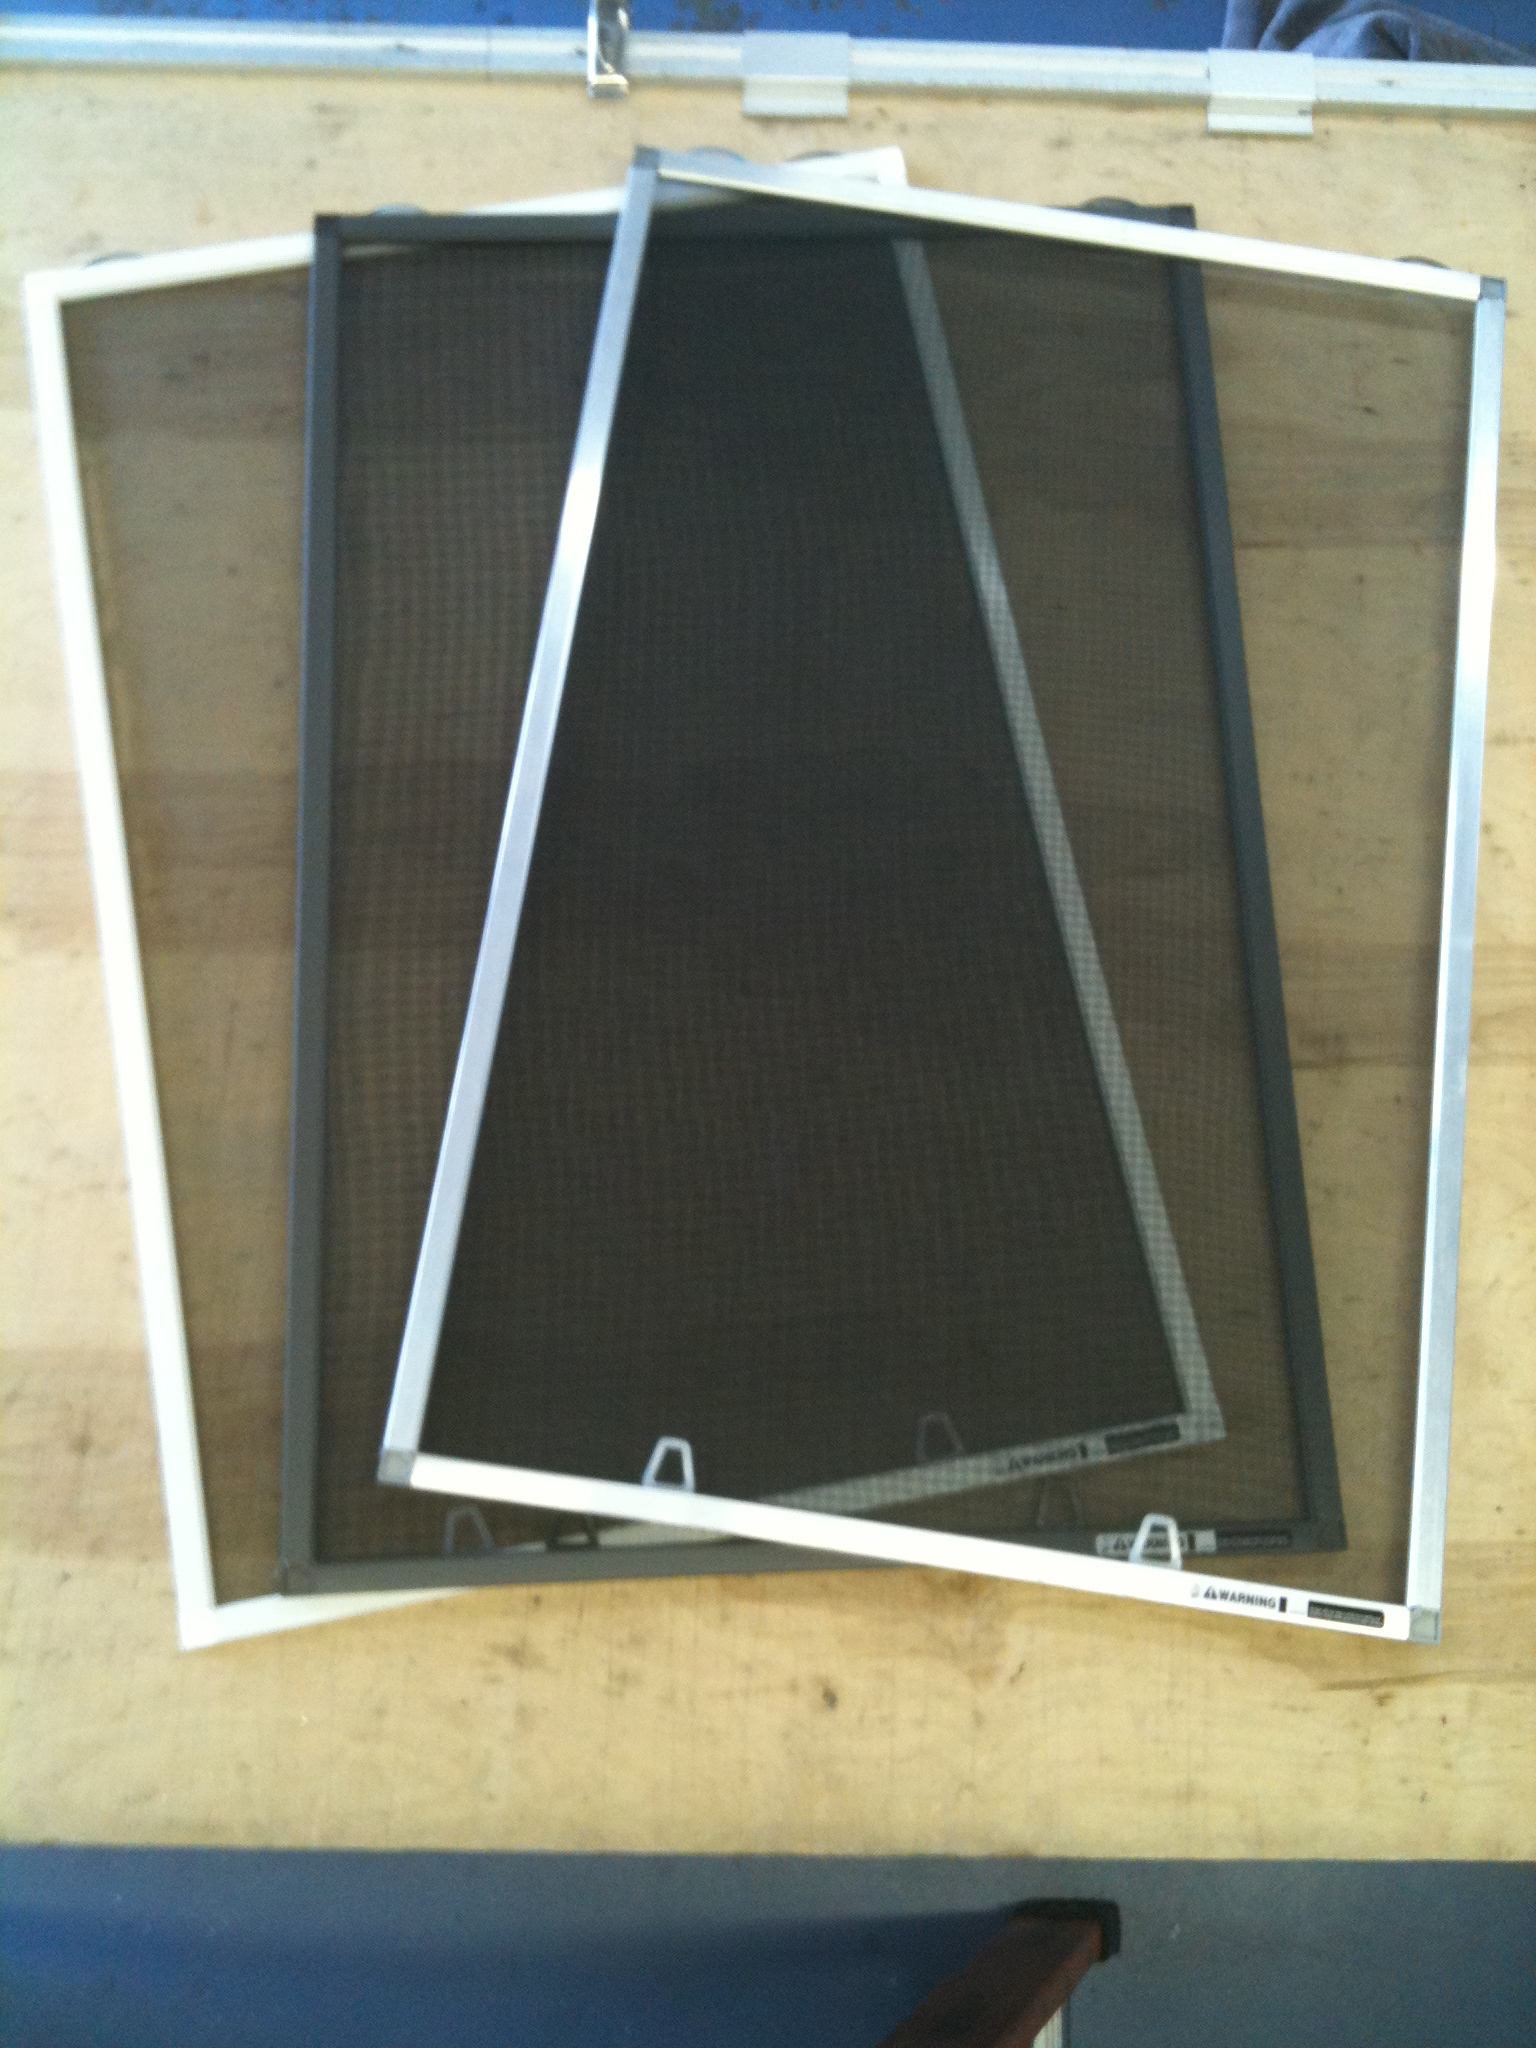 Sceen repair and replacement in the east bay windowsmith for Window screen repair